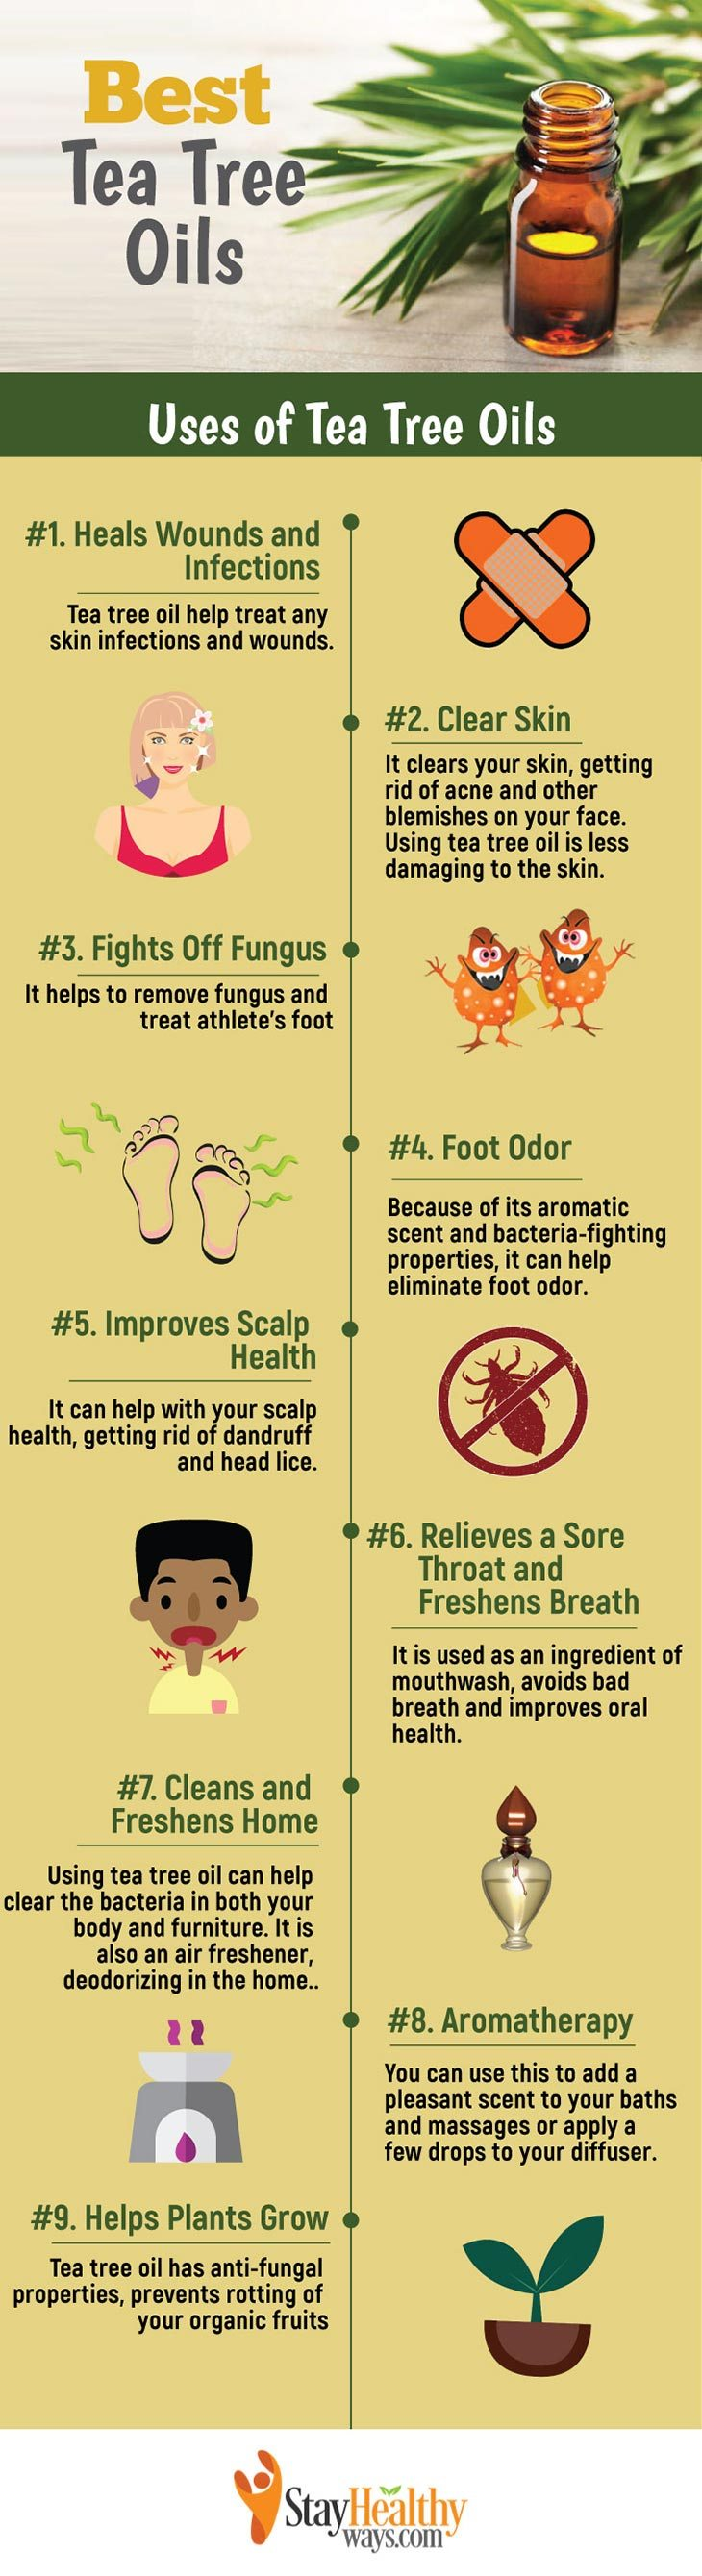 best tea tree oil infographic